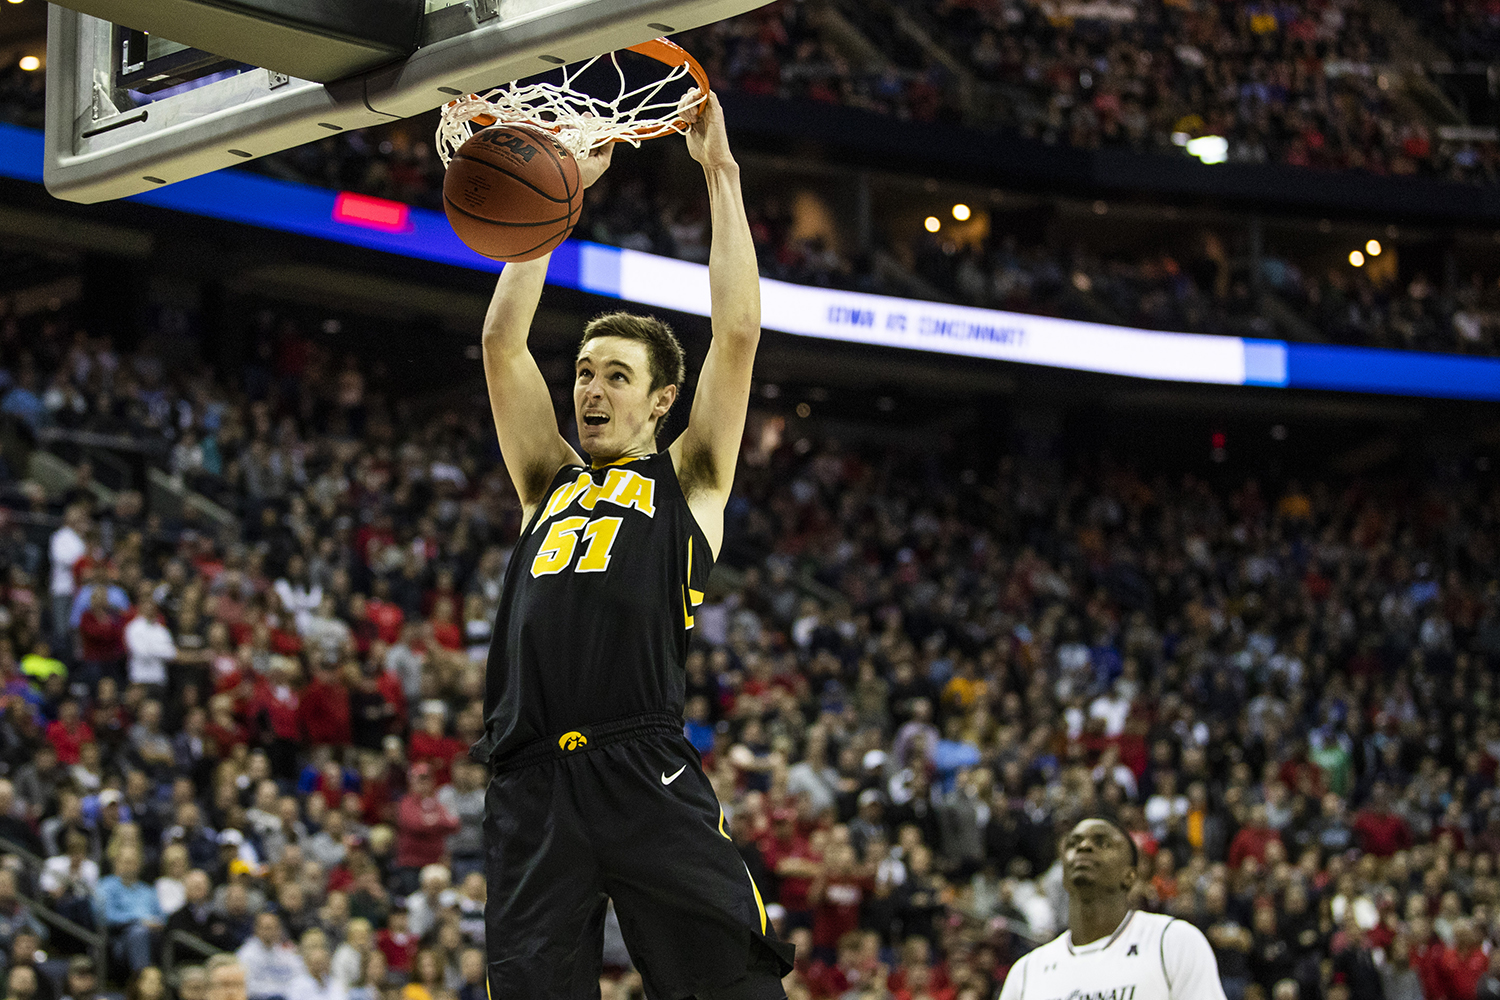 during the NCAA game against Cincinnati at Nationwide Arena on Friday March 22, 2019. The Hawkeyes defeated the Bearcats 79-72.